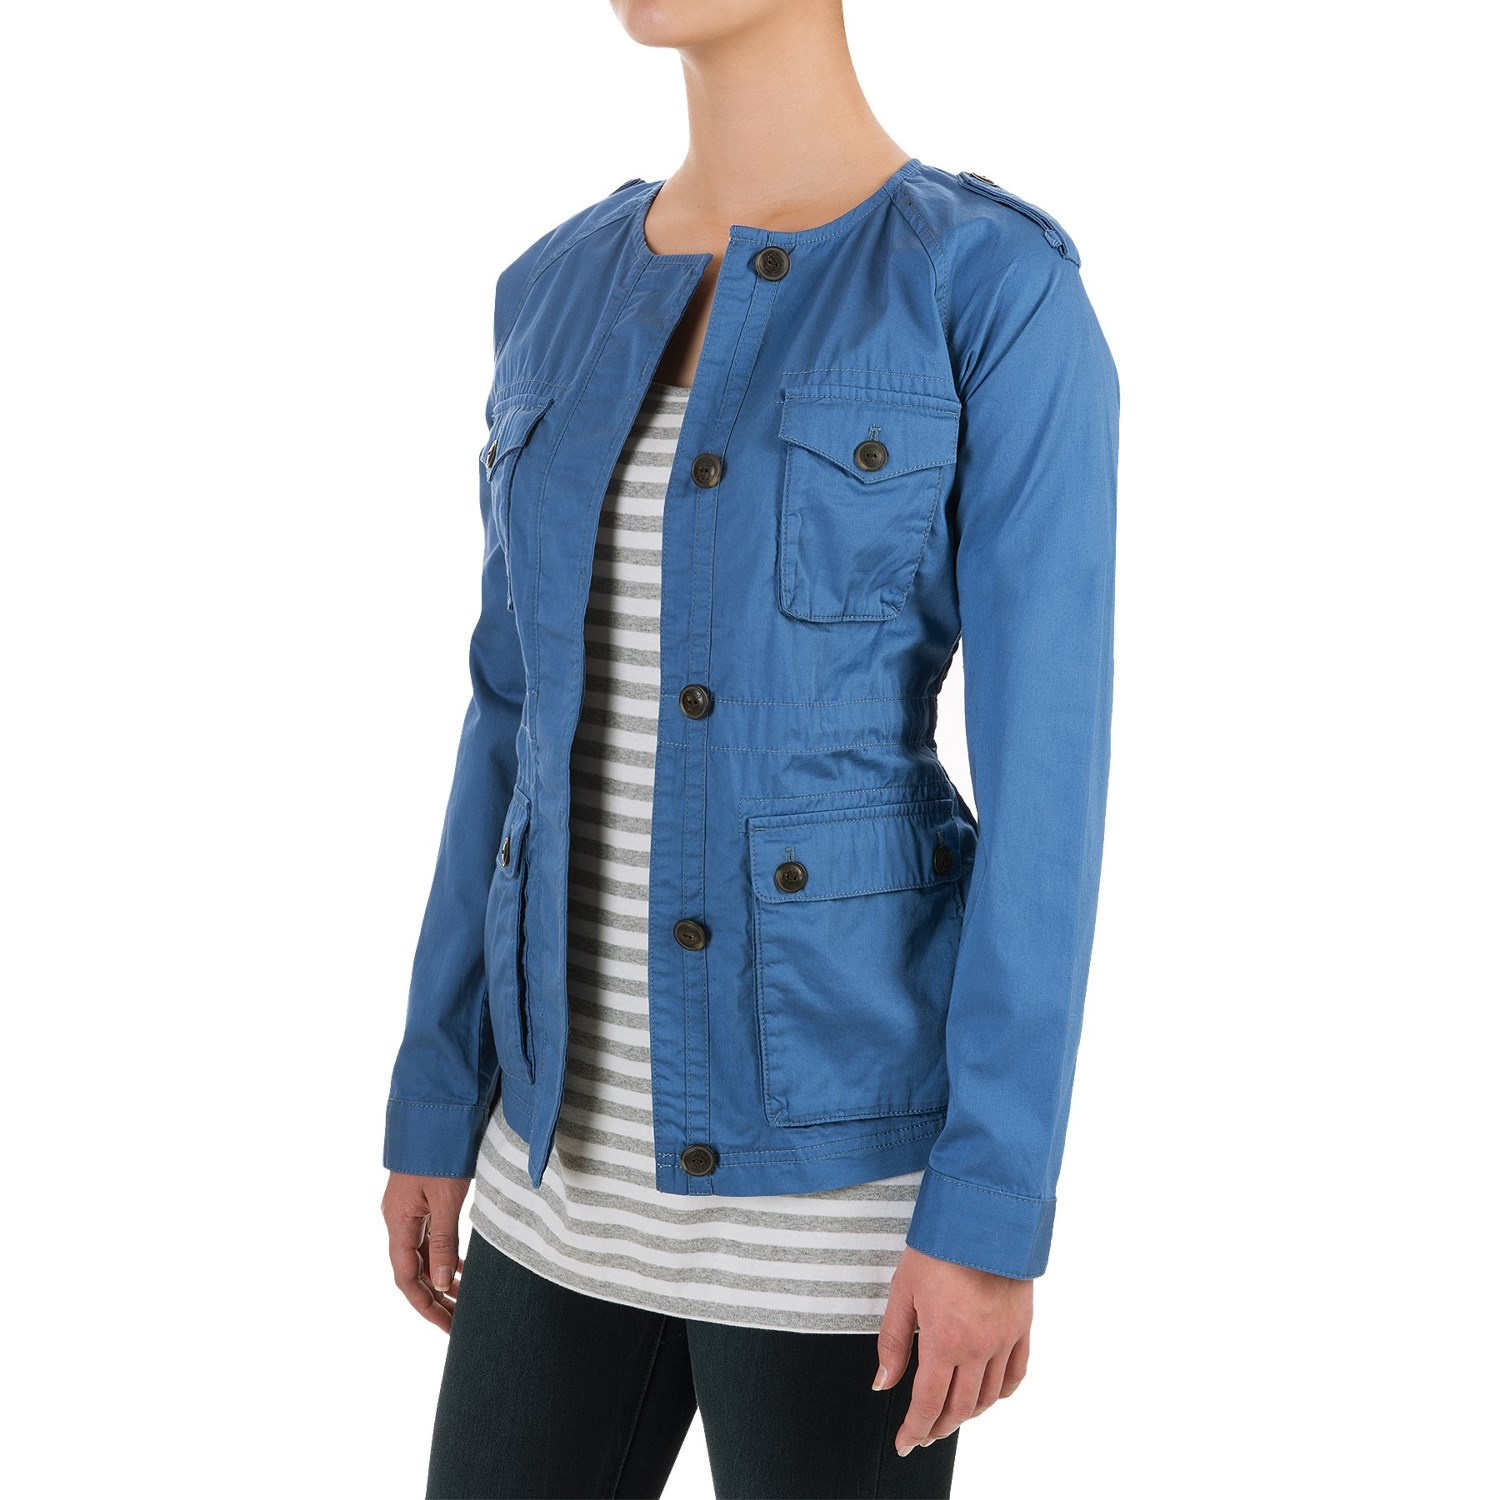 Timberland jackets for women